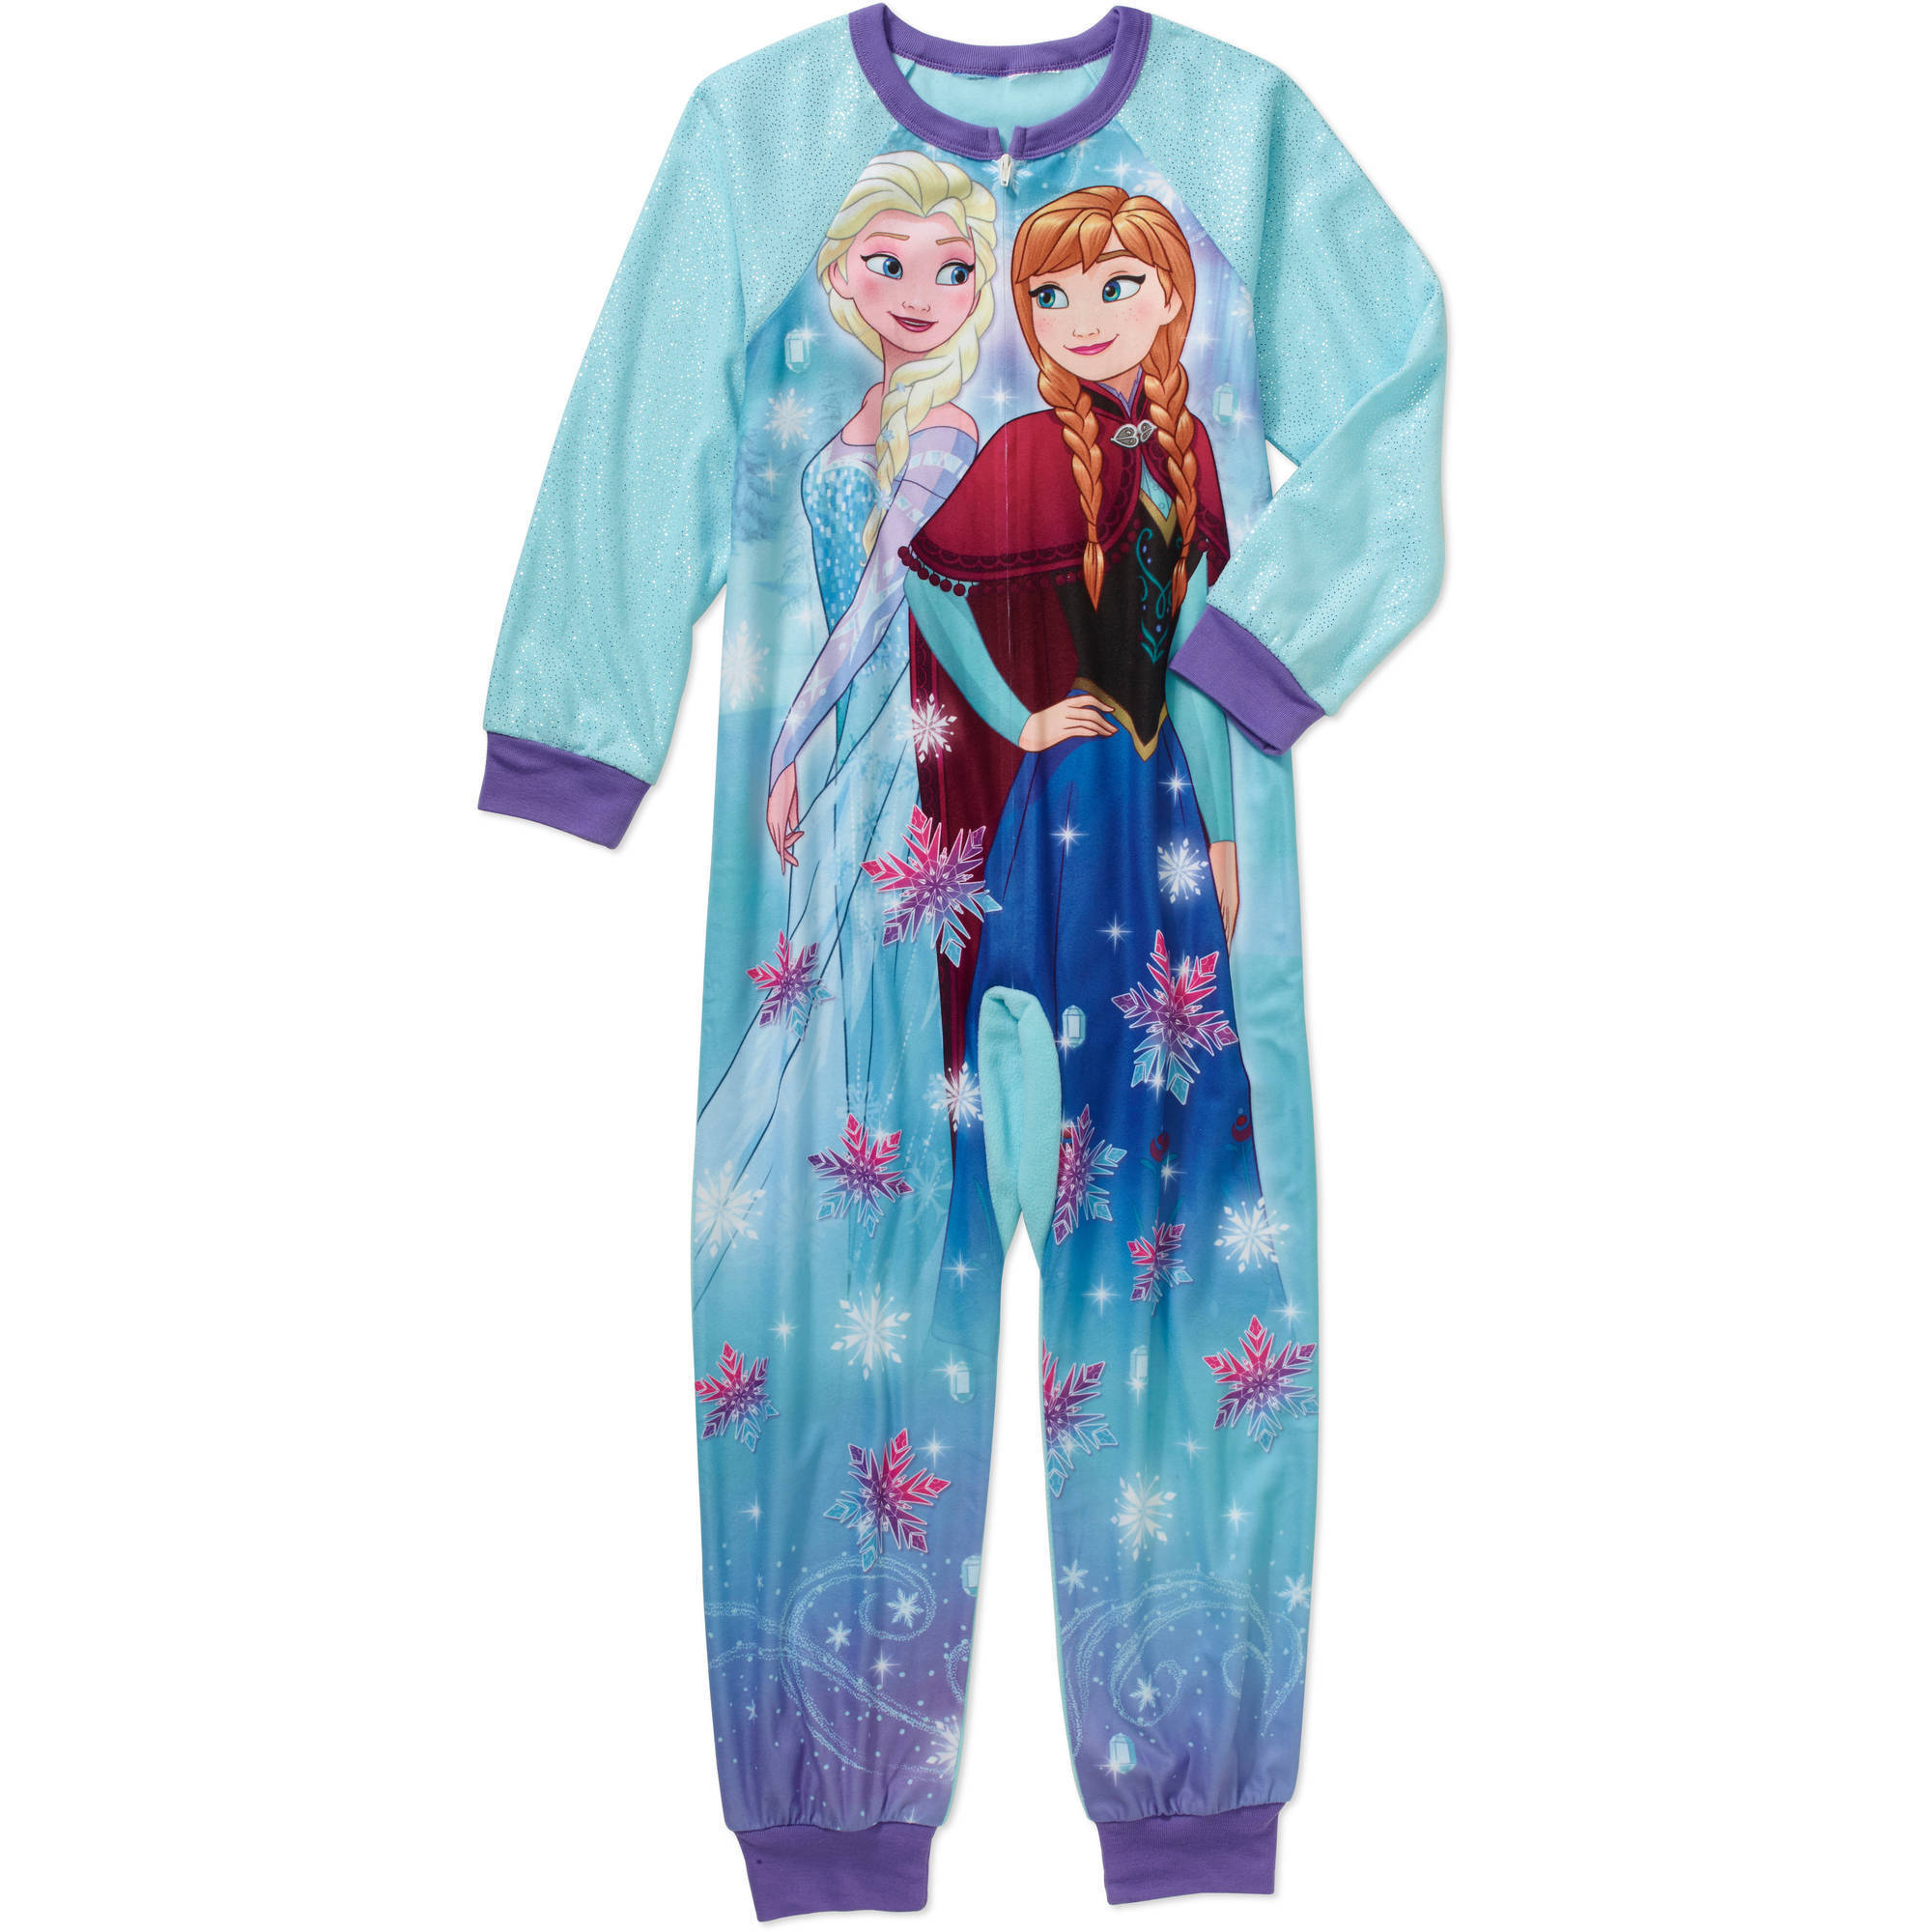 Girls' Licensed 1-Pc Sleeper